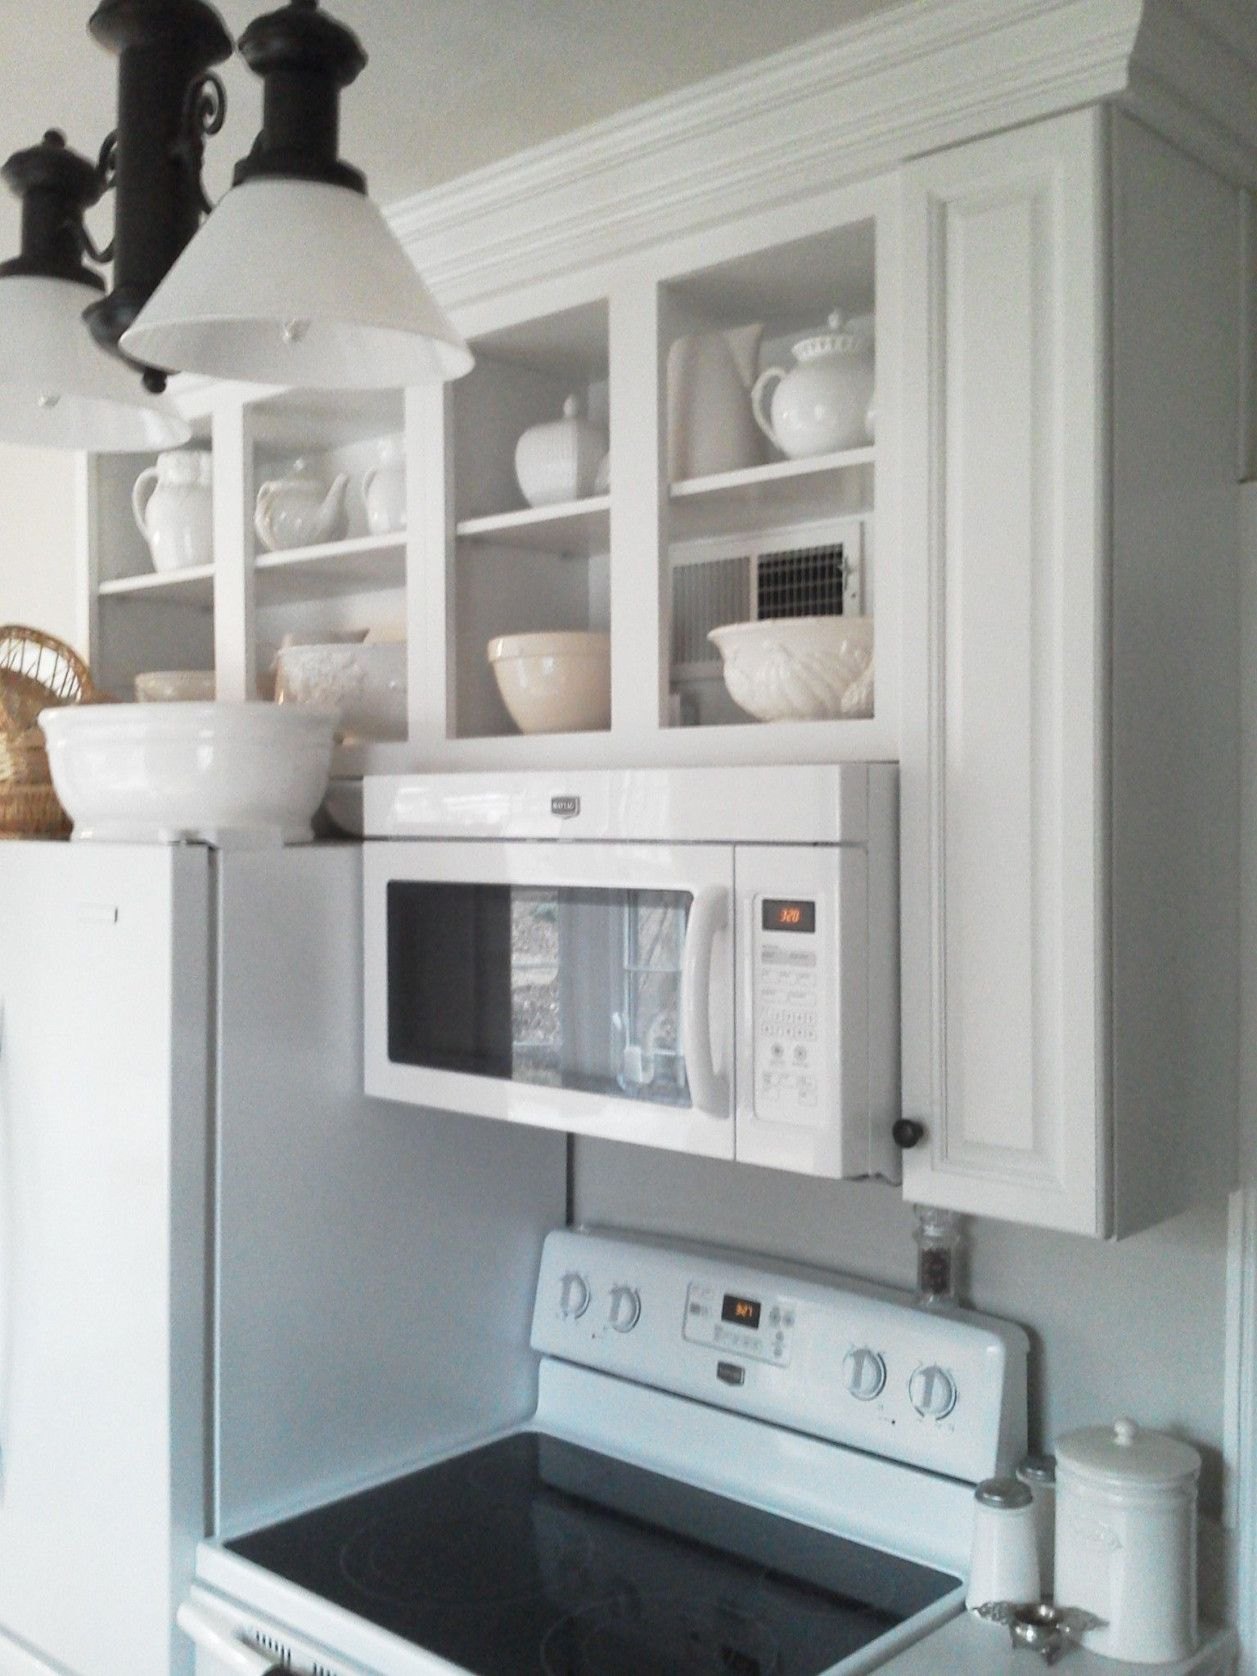 55 wall mounted microwave cabinet backsplash for kitchen ideas check more at http